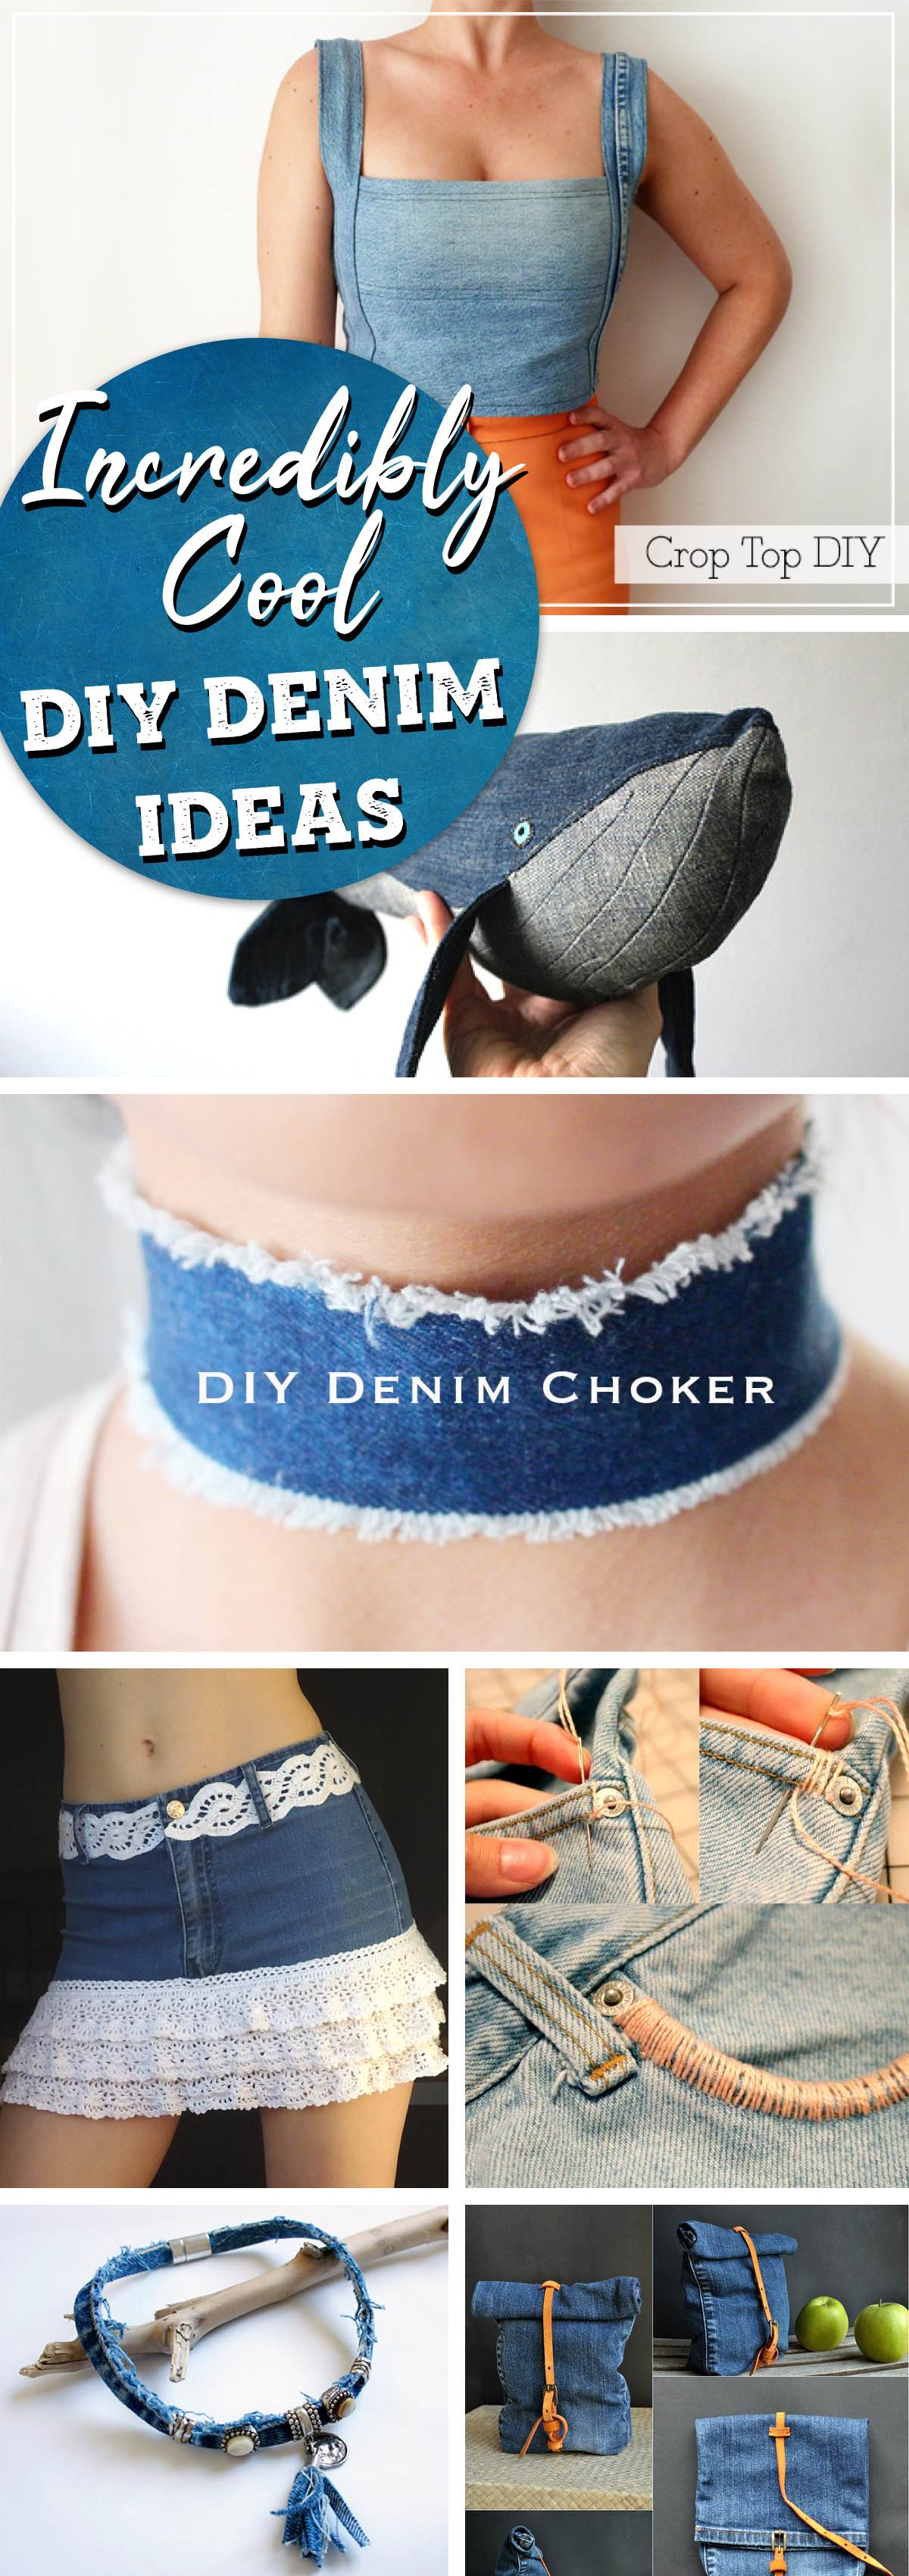 22 Incredibly Cool DIY Denim Ideas Ranging from Organization to Accessories!